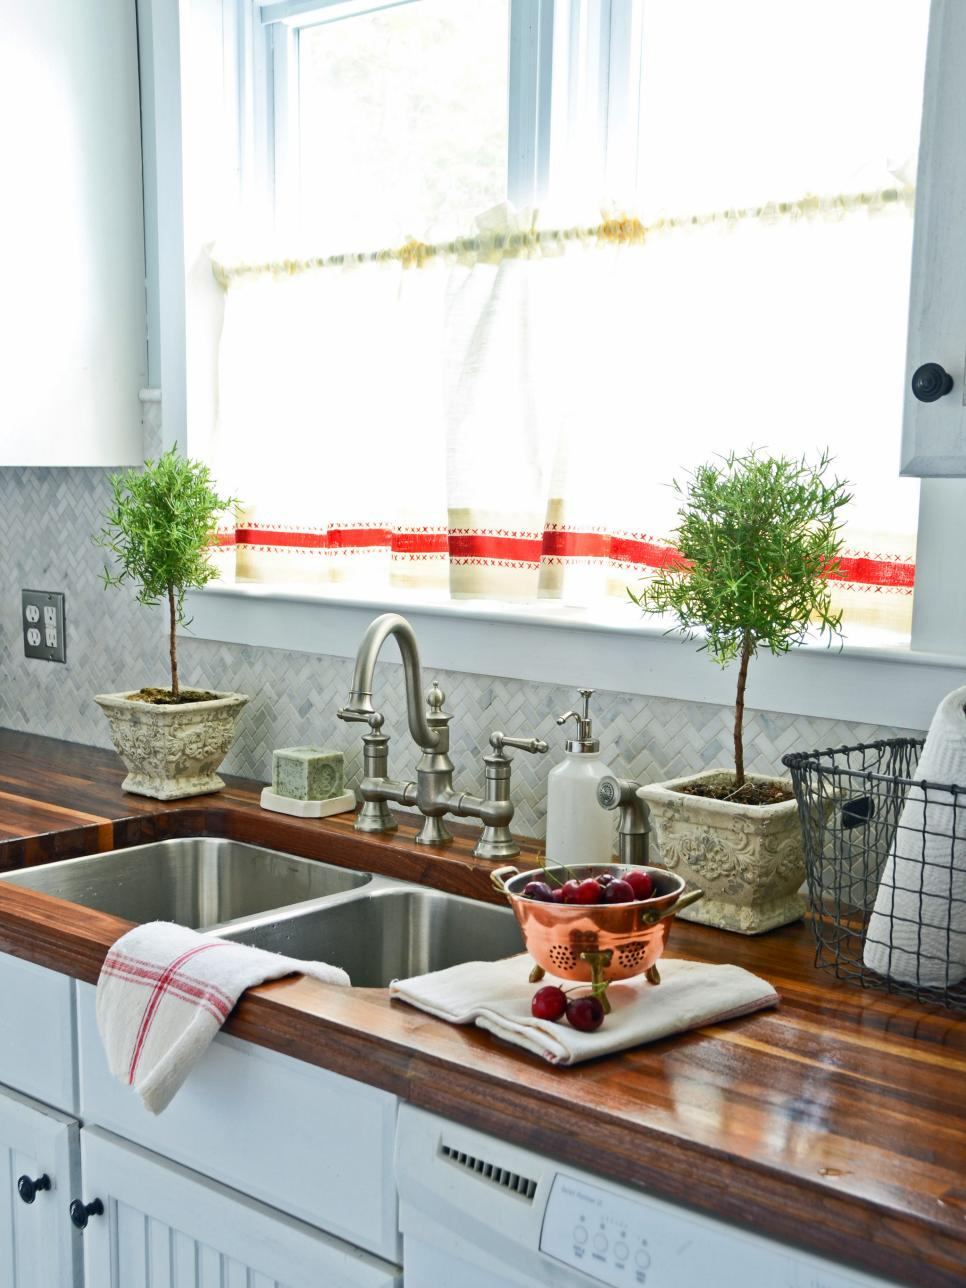 10 diy ways to spruce up plain window treatments hgtv for Kitchen ideas no window